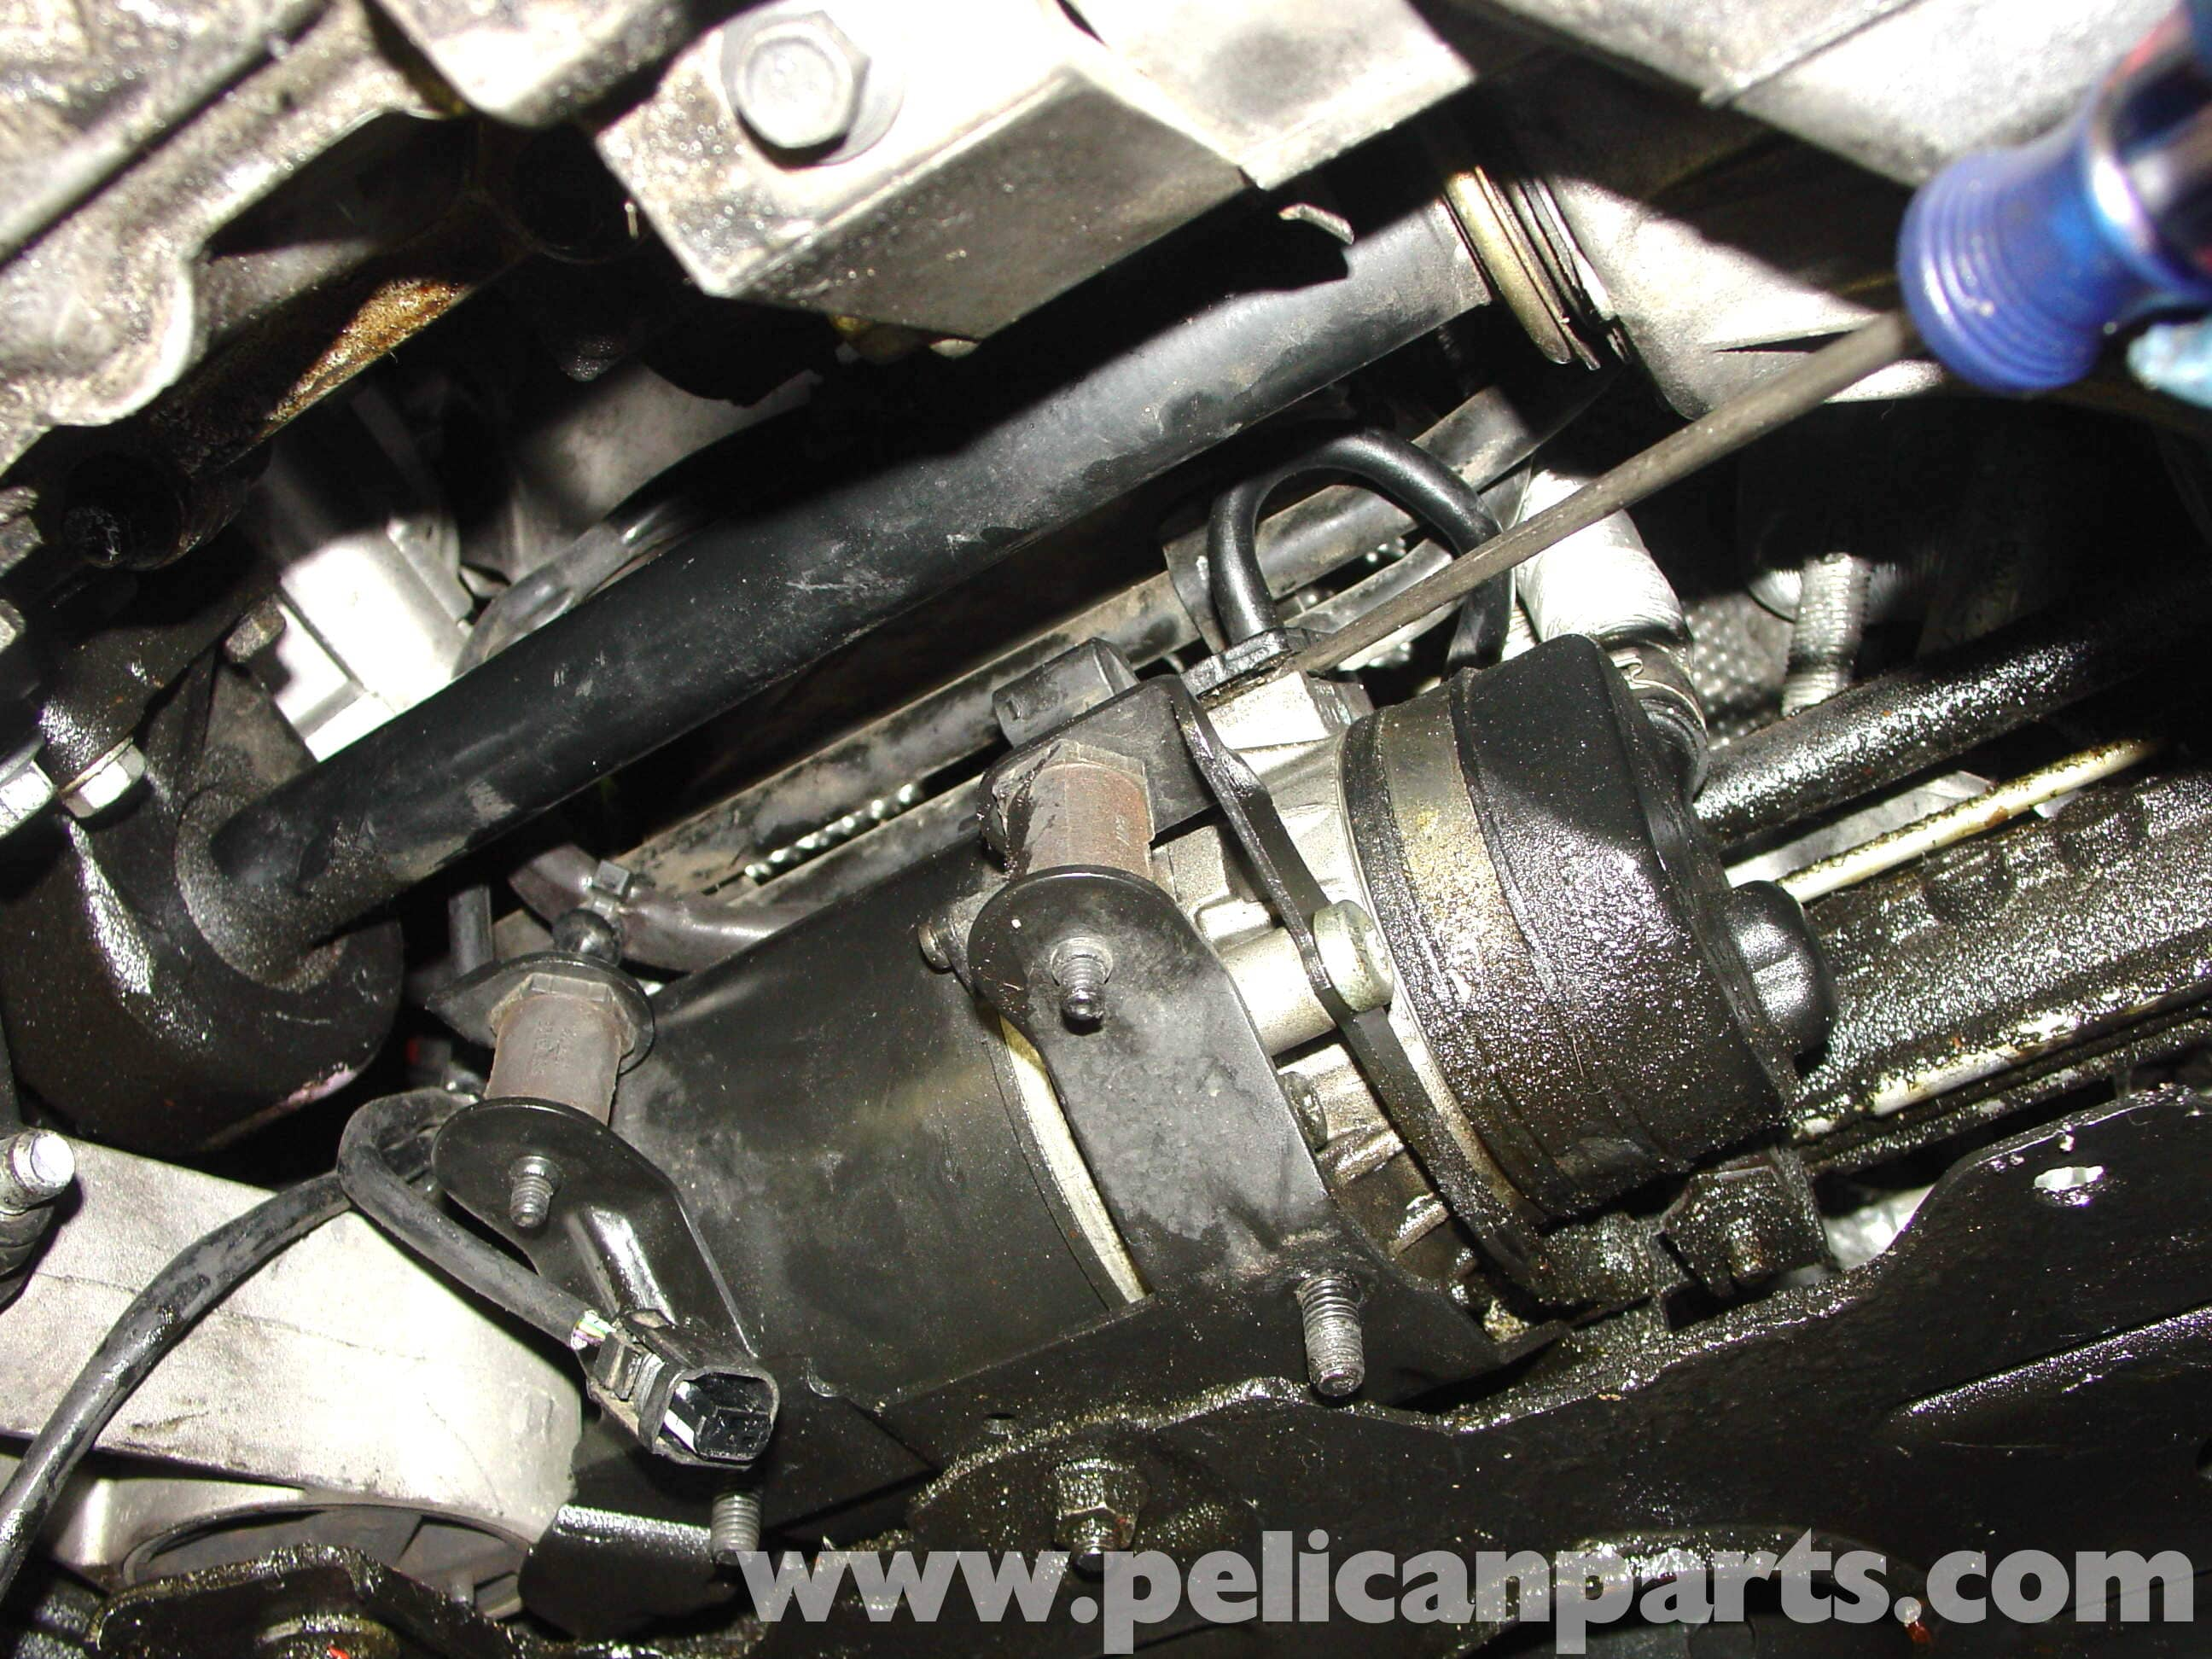 MINI Cooper Power Steering Pump Replacement (R50/R52/R53